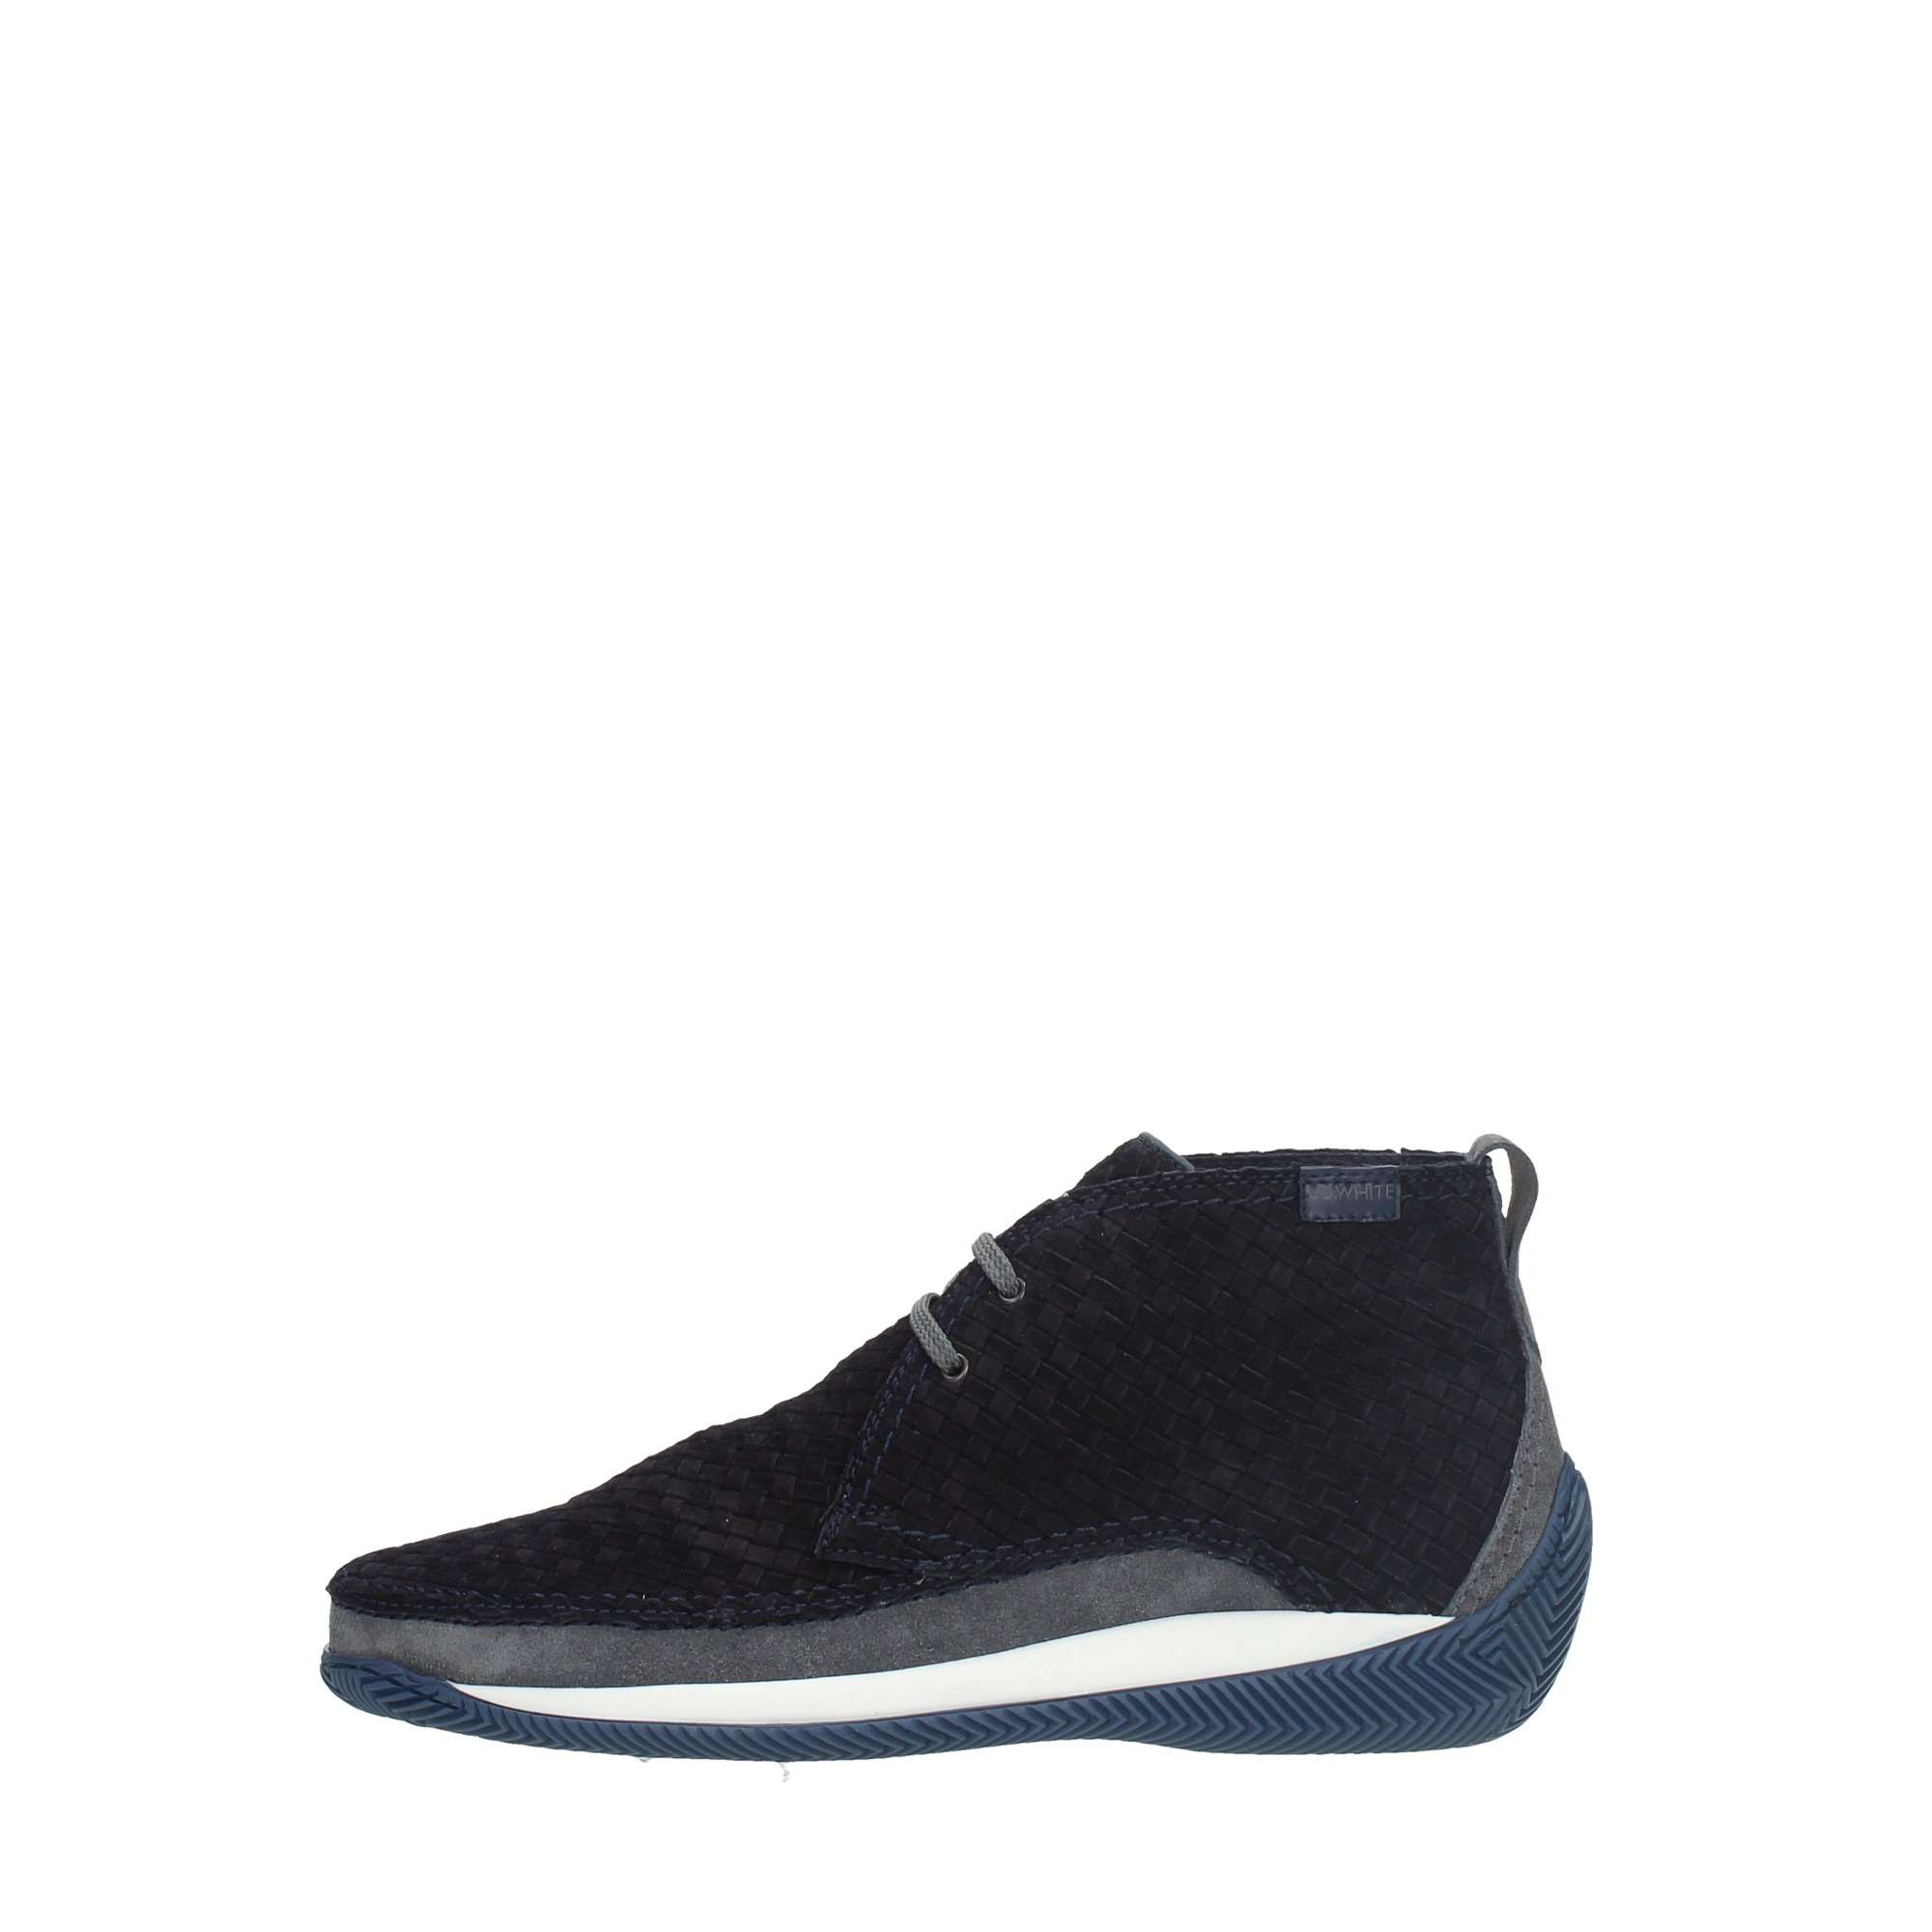 Lo.white Shoes Man Booties Blue 28030/BLU